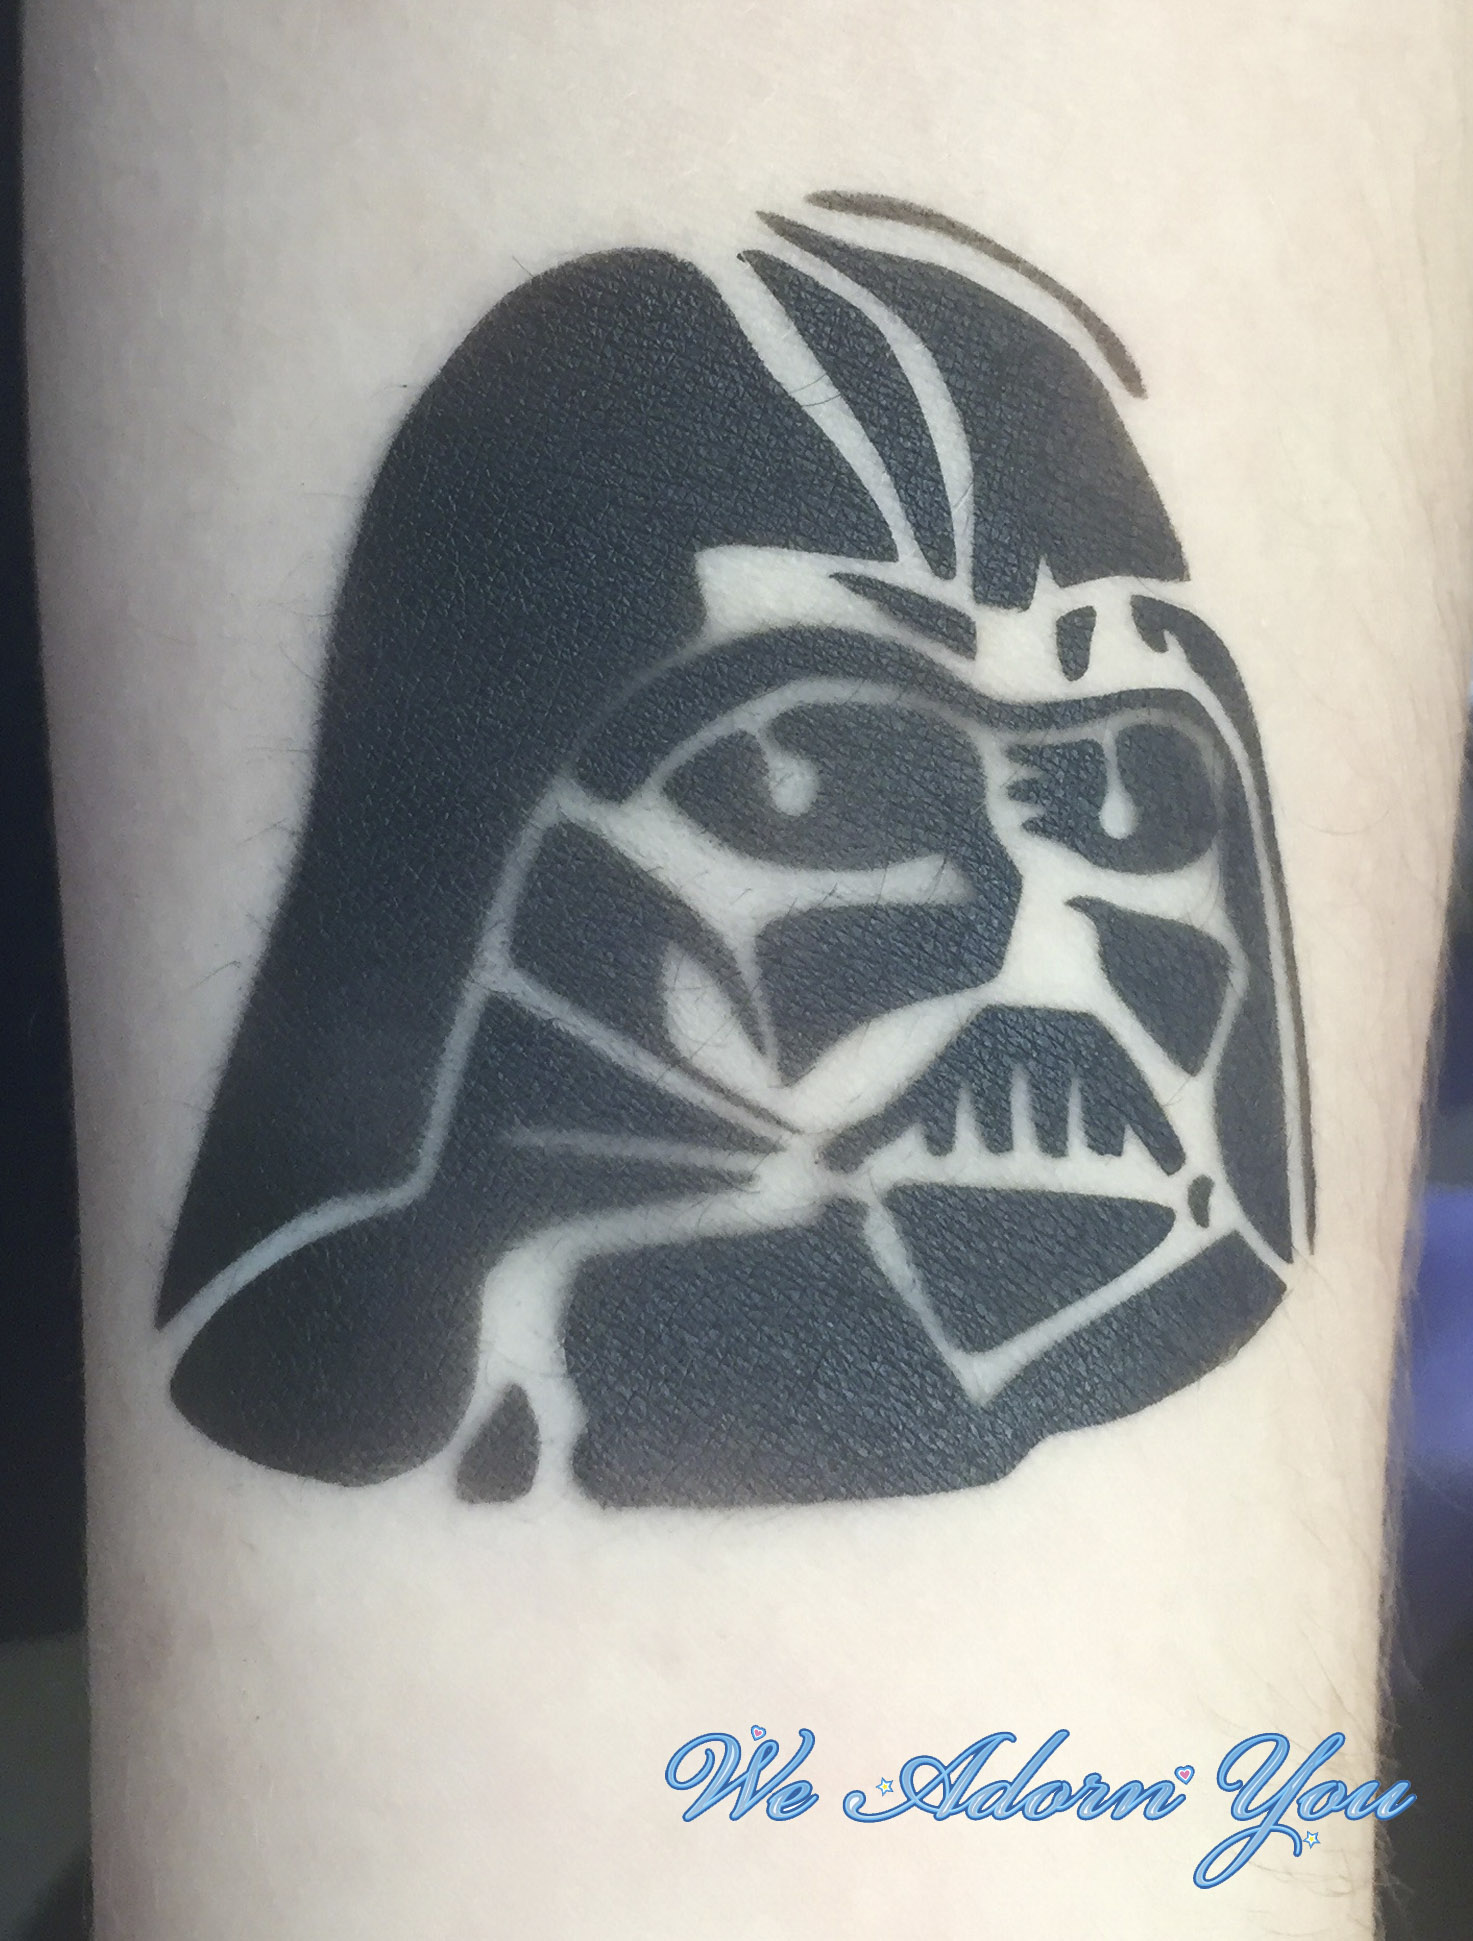 Airbrush Tattoo Darth Vader - We Adorn You.jpg